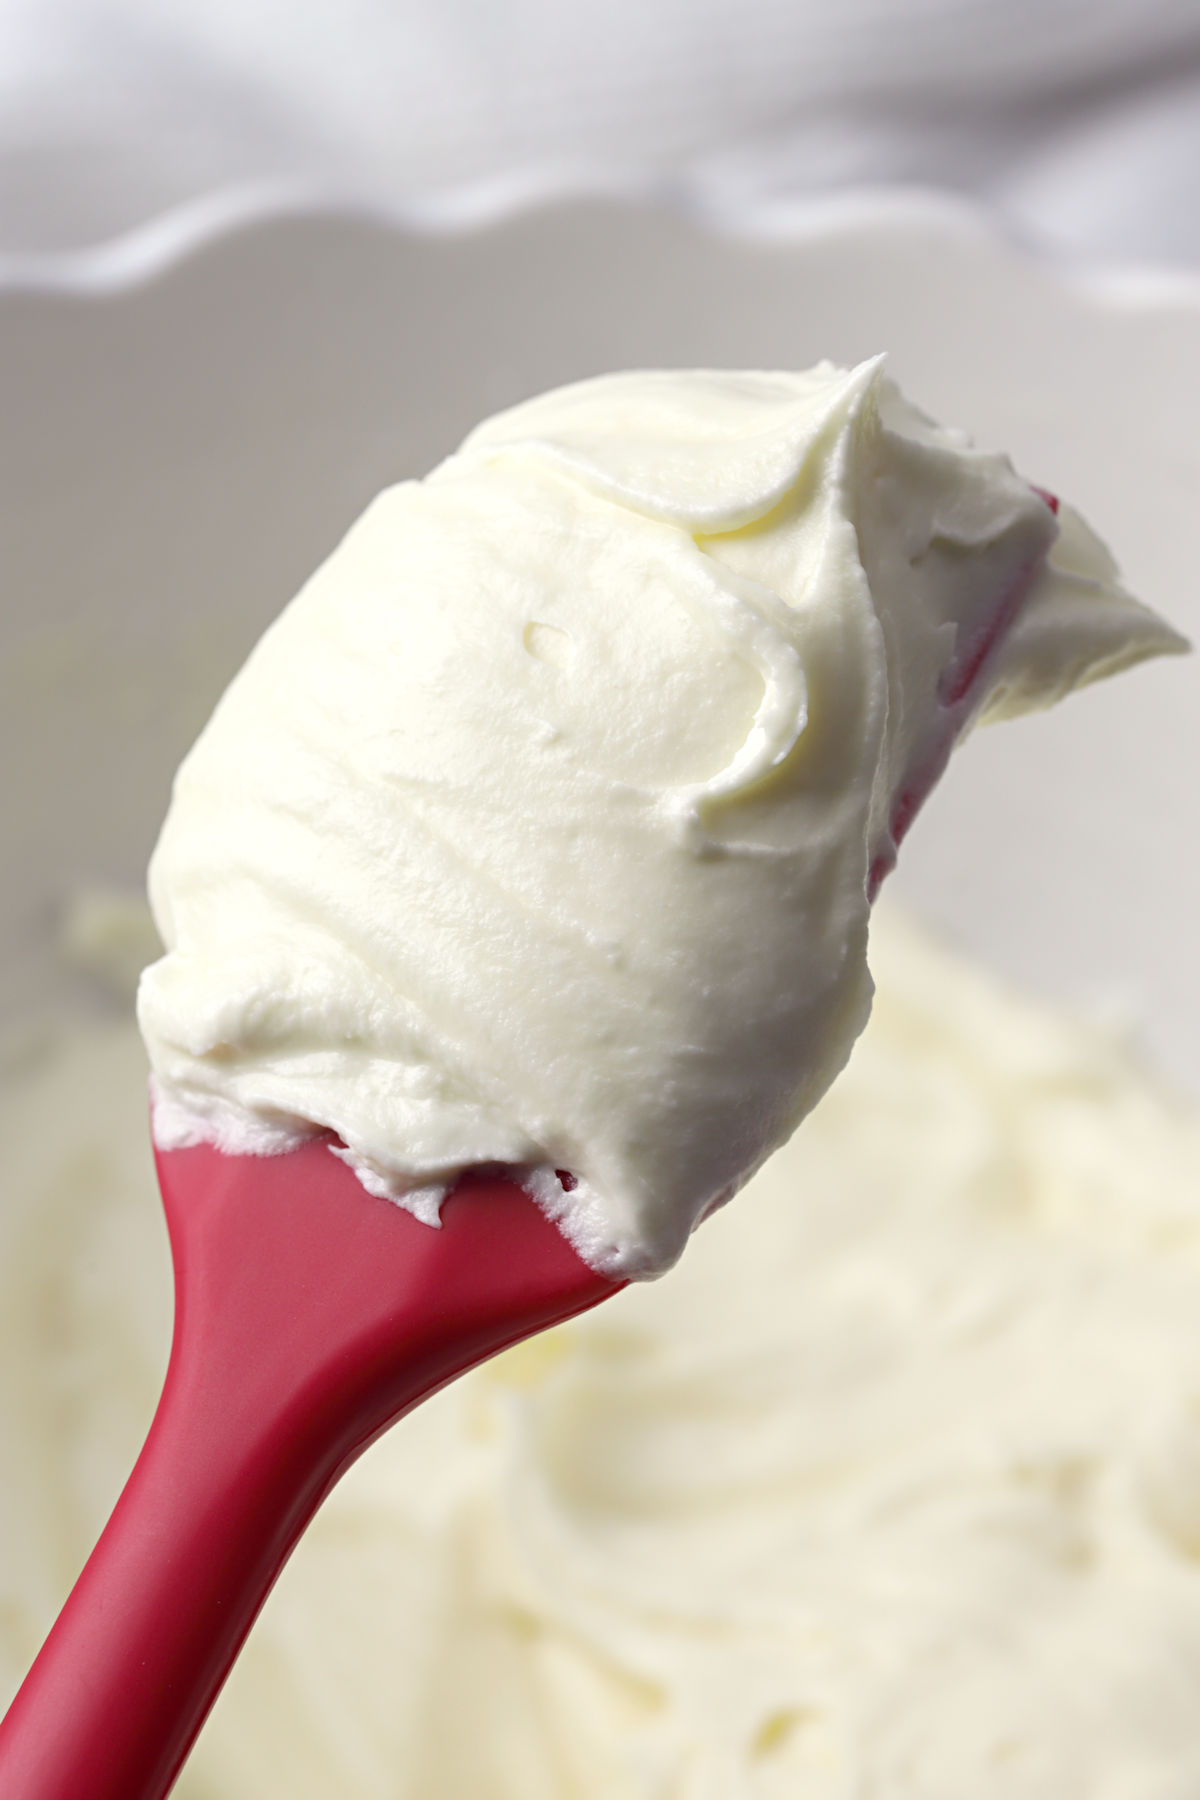 Red spatula covered in white frosting.